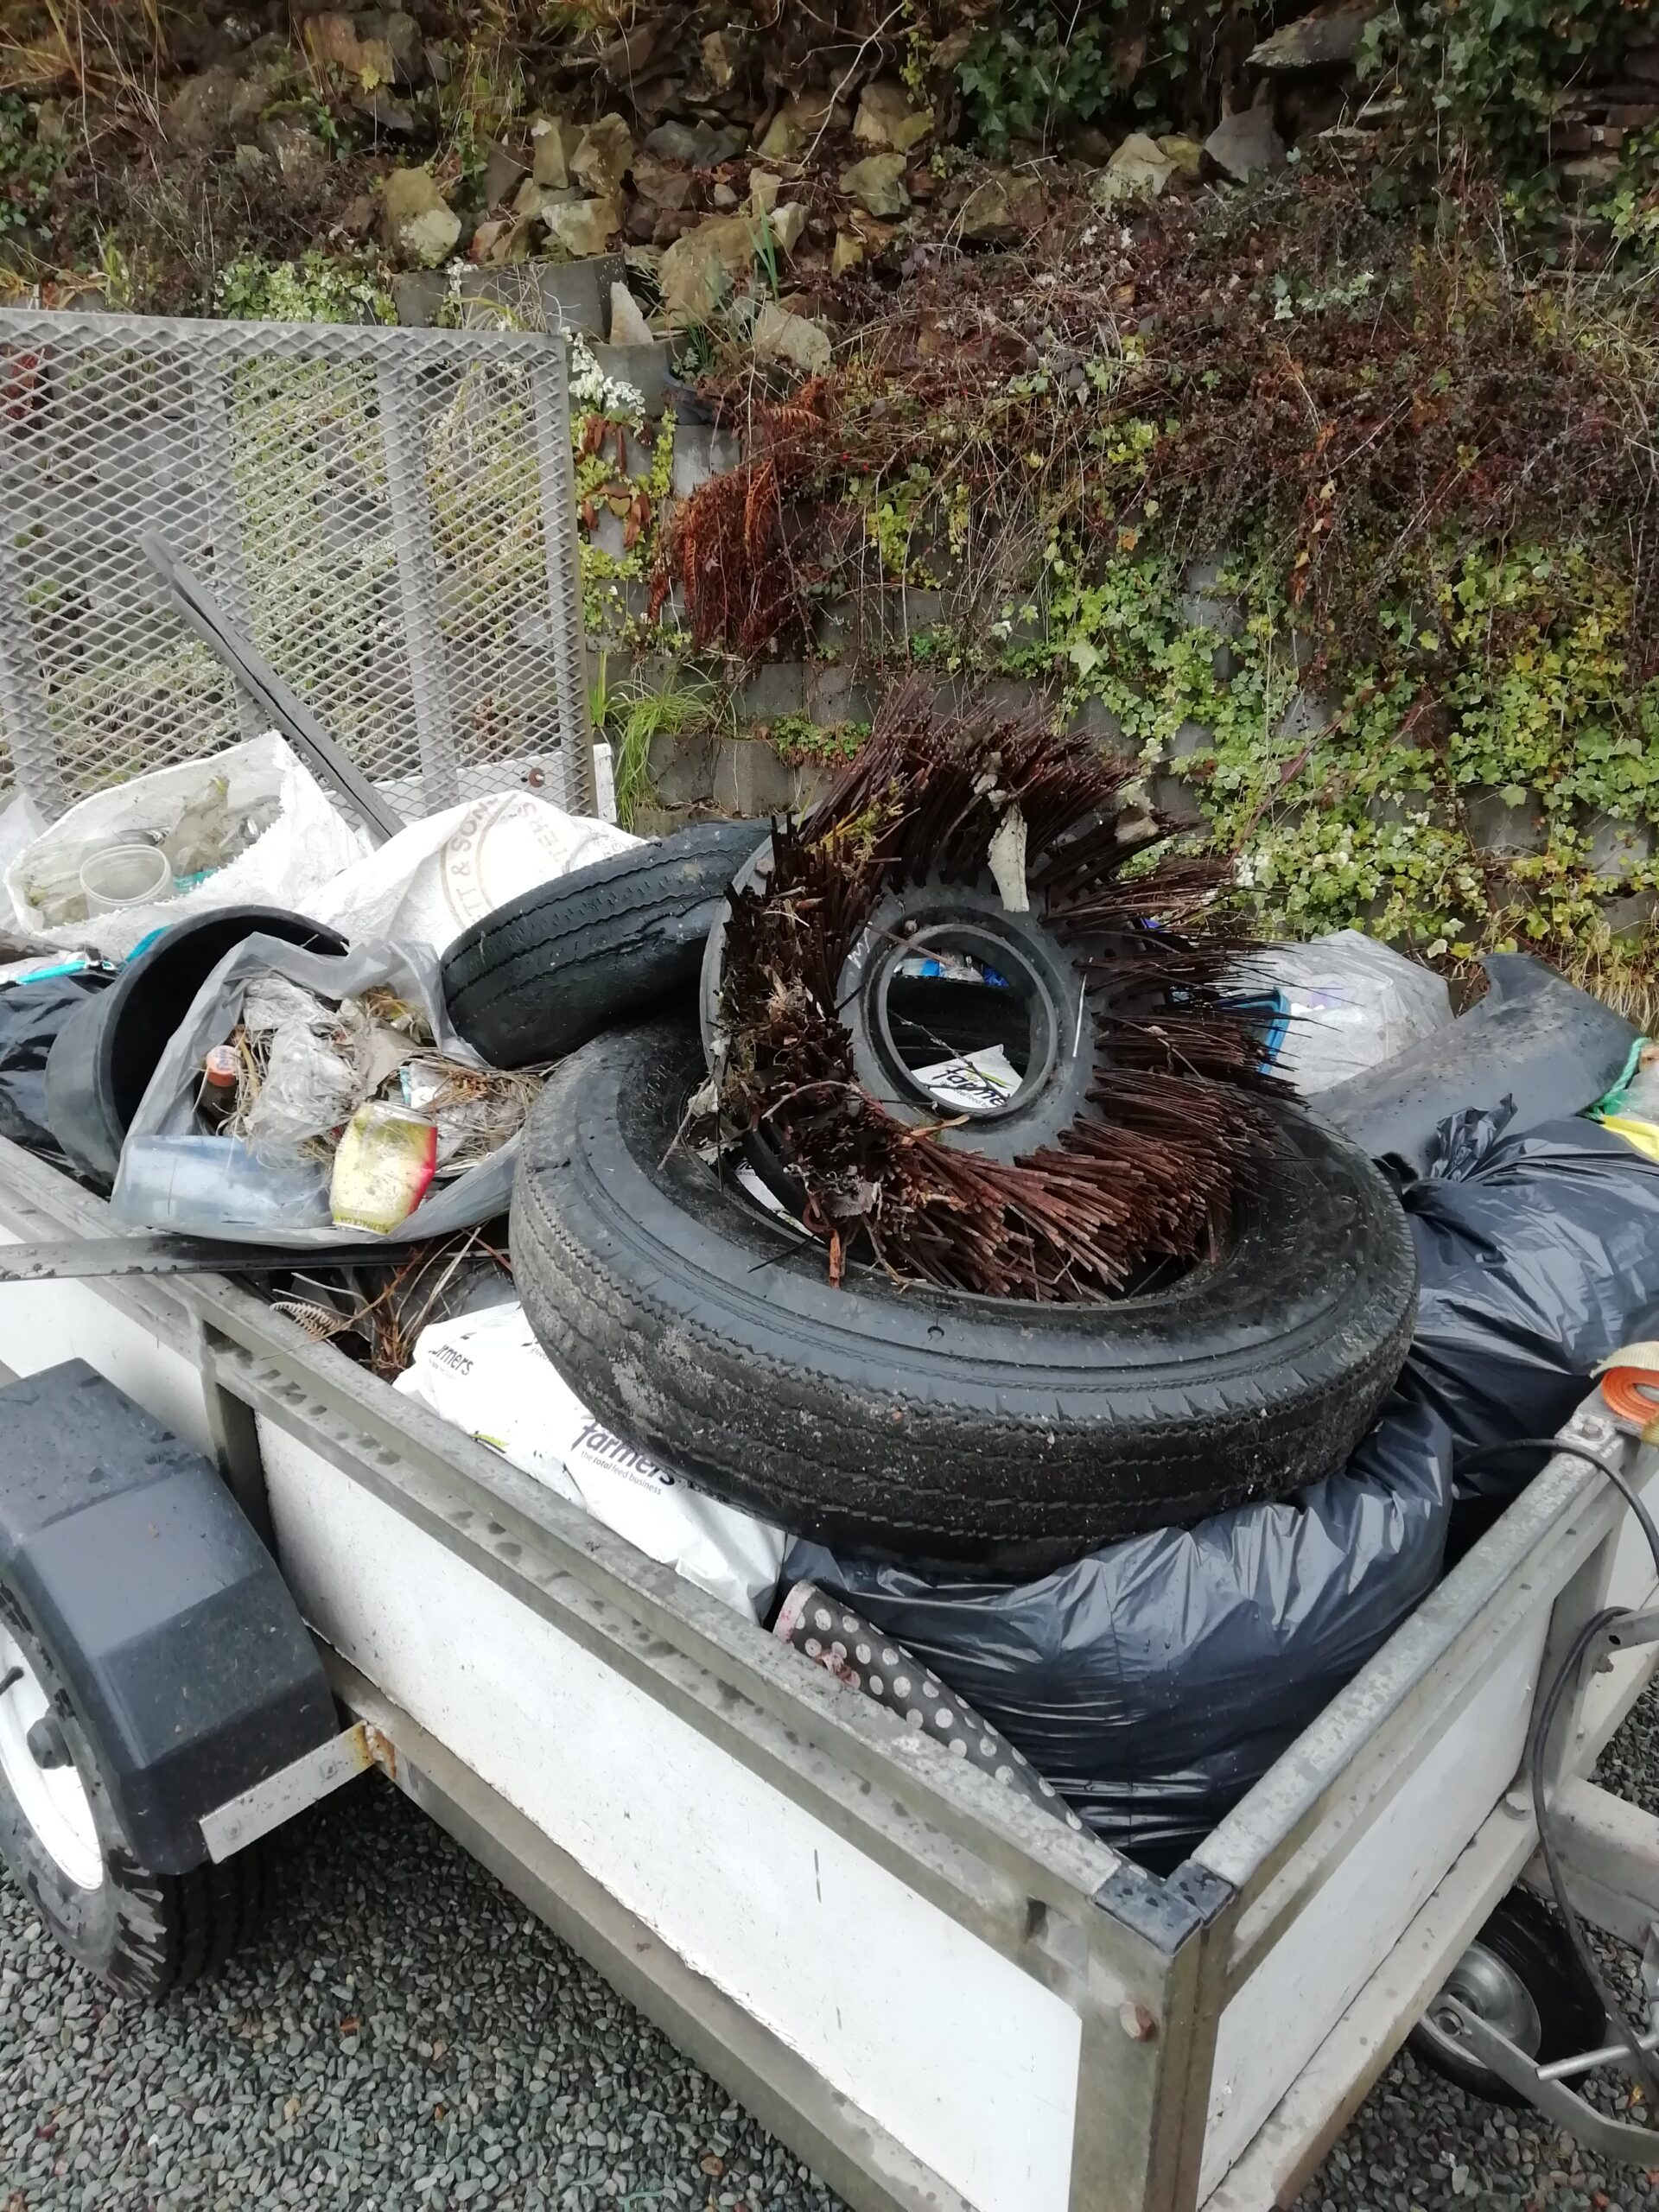 Trailer load of Fly-tipped Waste along A595